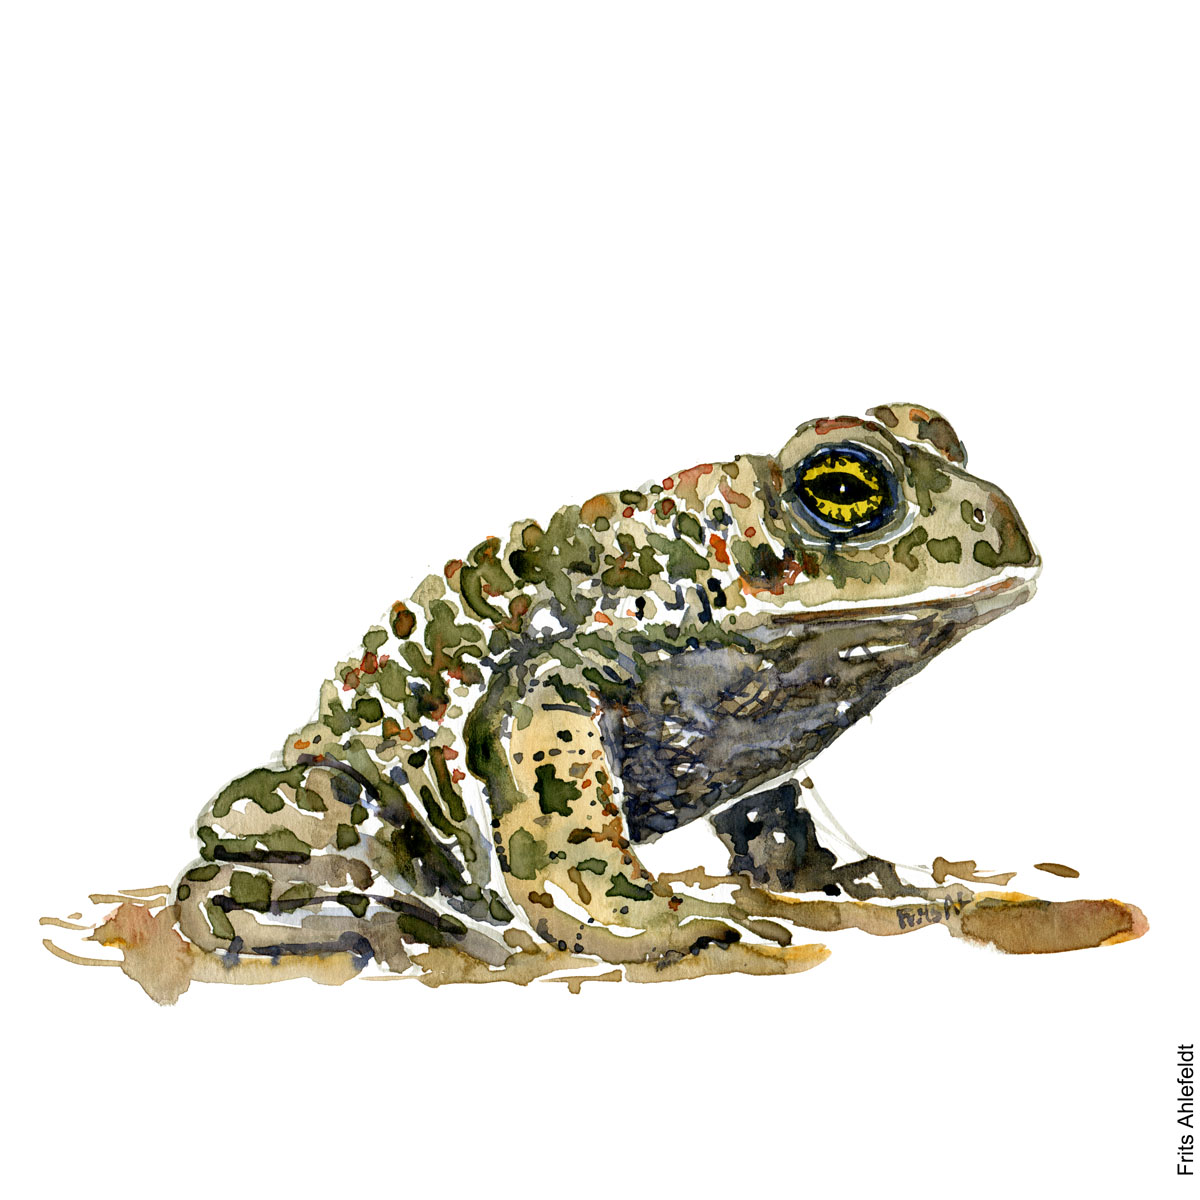 Illustration of Natterjack toad. sideview. looking right. Frog watercolor painting handmade by Frits Ahlefeldt